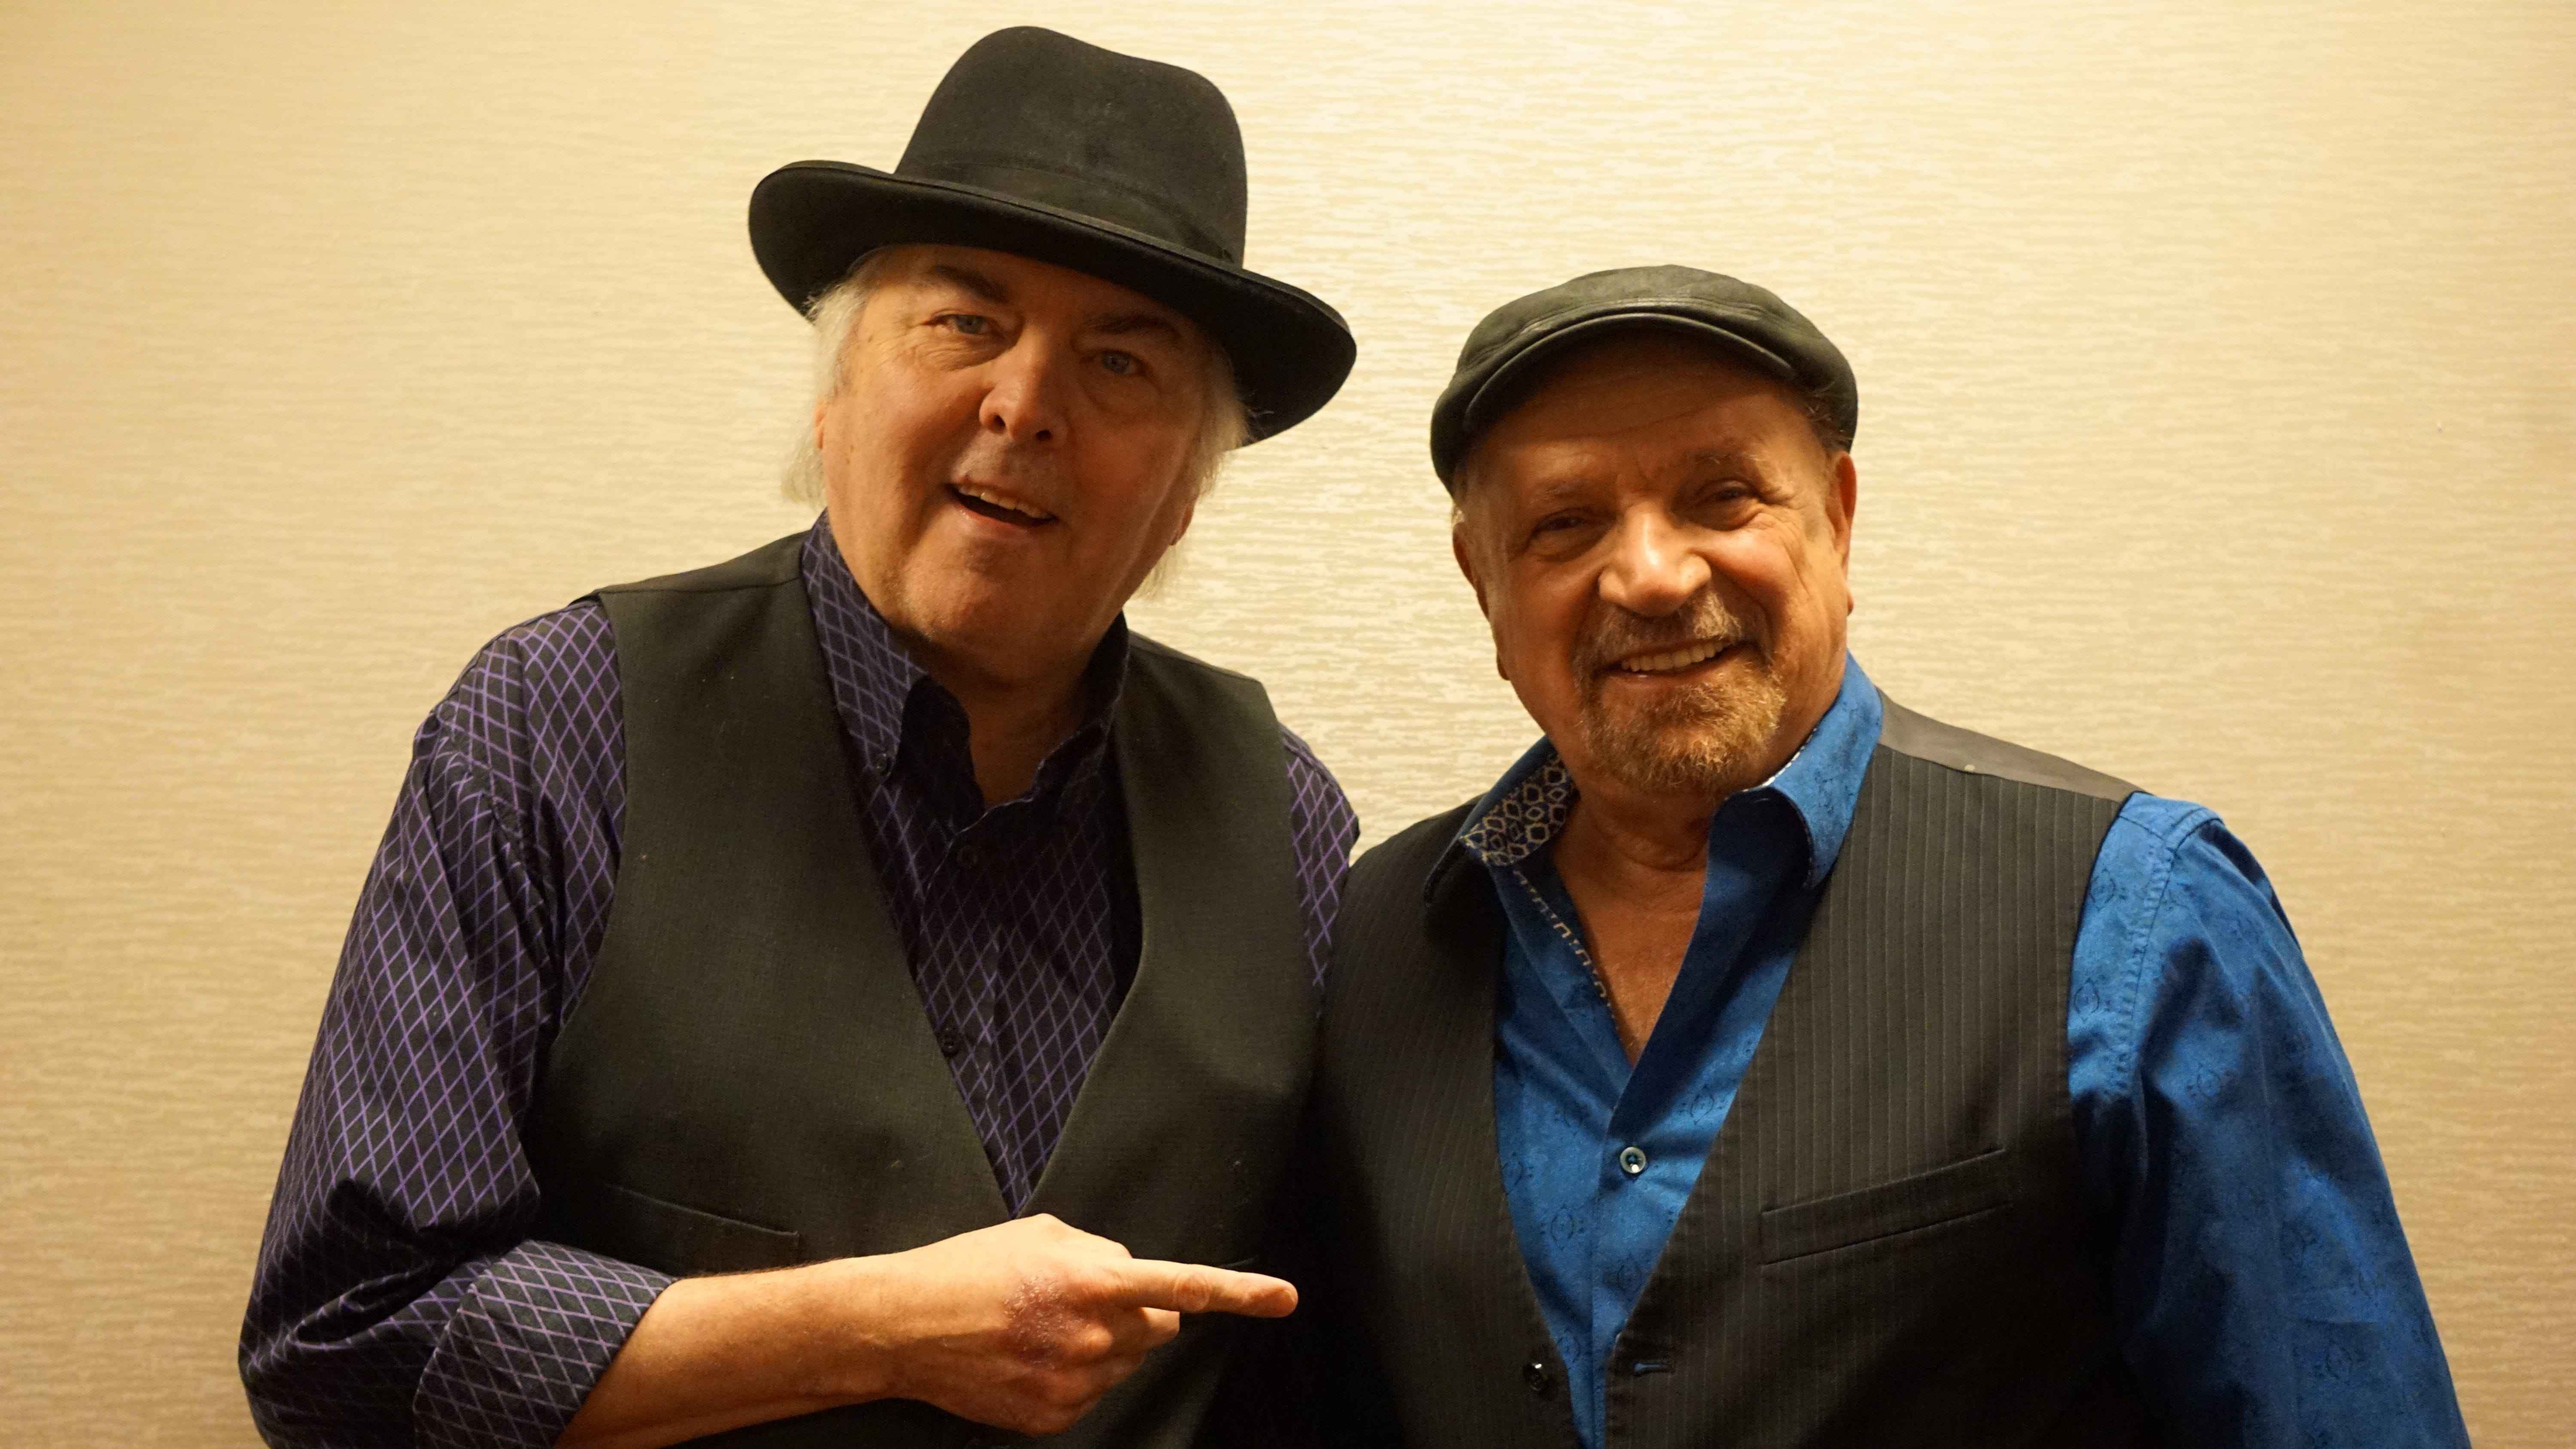 """Guitarist Gene Cornish (left) and vocalist-keyboard player Felix Cavaliere, two of the founding members of the Rascals, have reunited for the first time in five years.  Joined by drummer Carmine Appice, they will perform such songs as """"Good Lovin'"""" and """"People Got to Be Free"""" at the Mayo PAC in Morristown on Friday, September 21."""